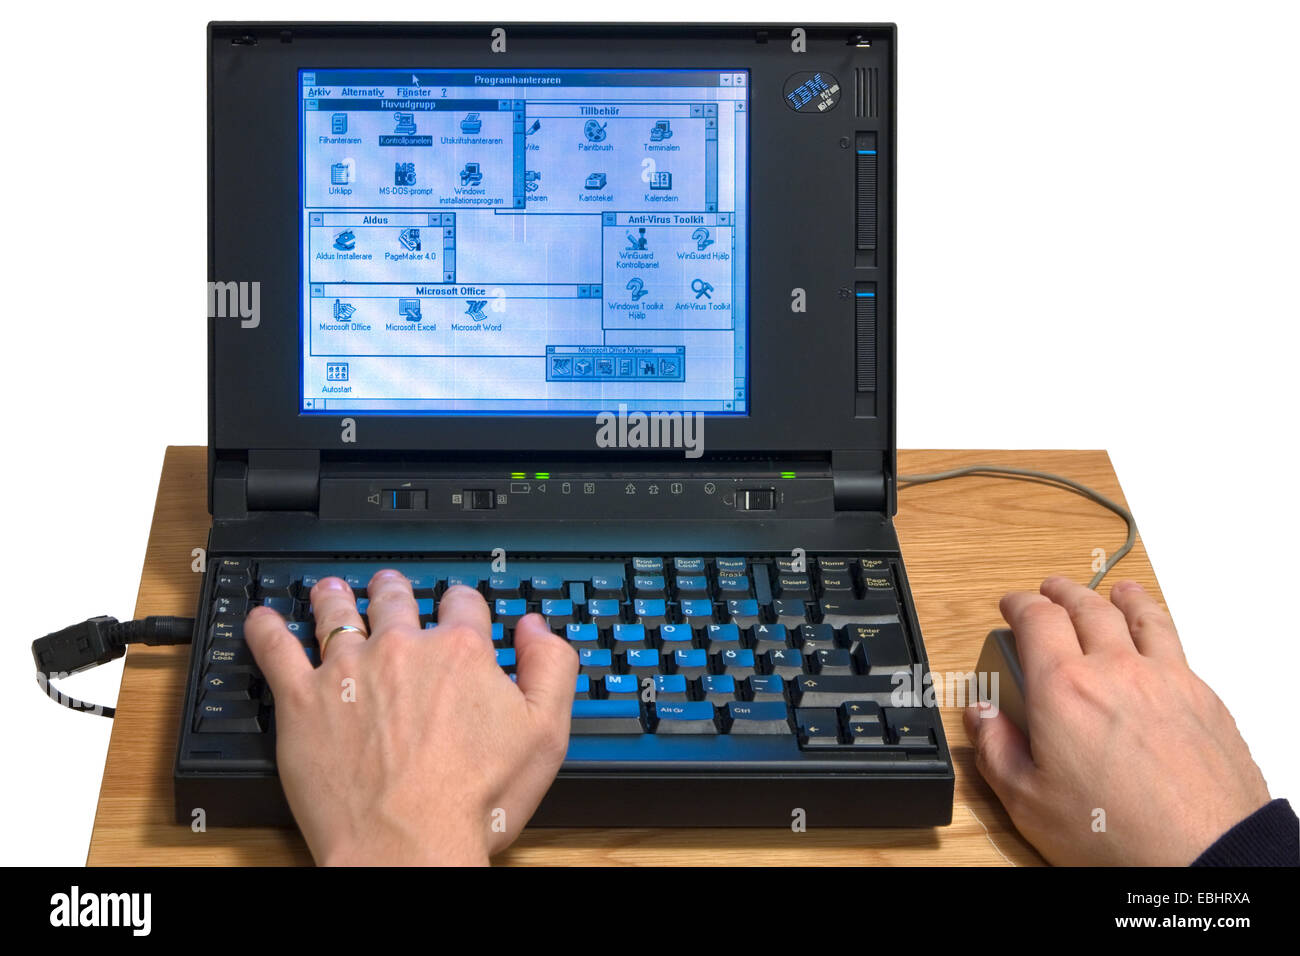 An IBM notebook from the early 1990s running Windows 3.1. - Stock Image